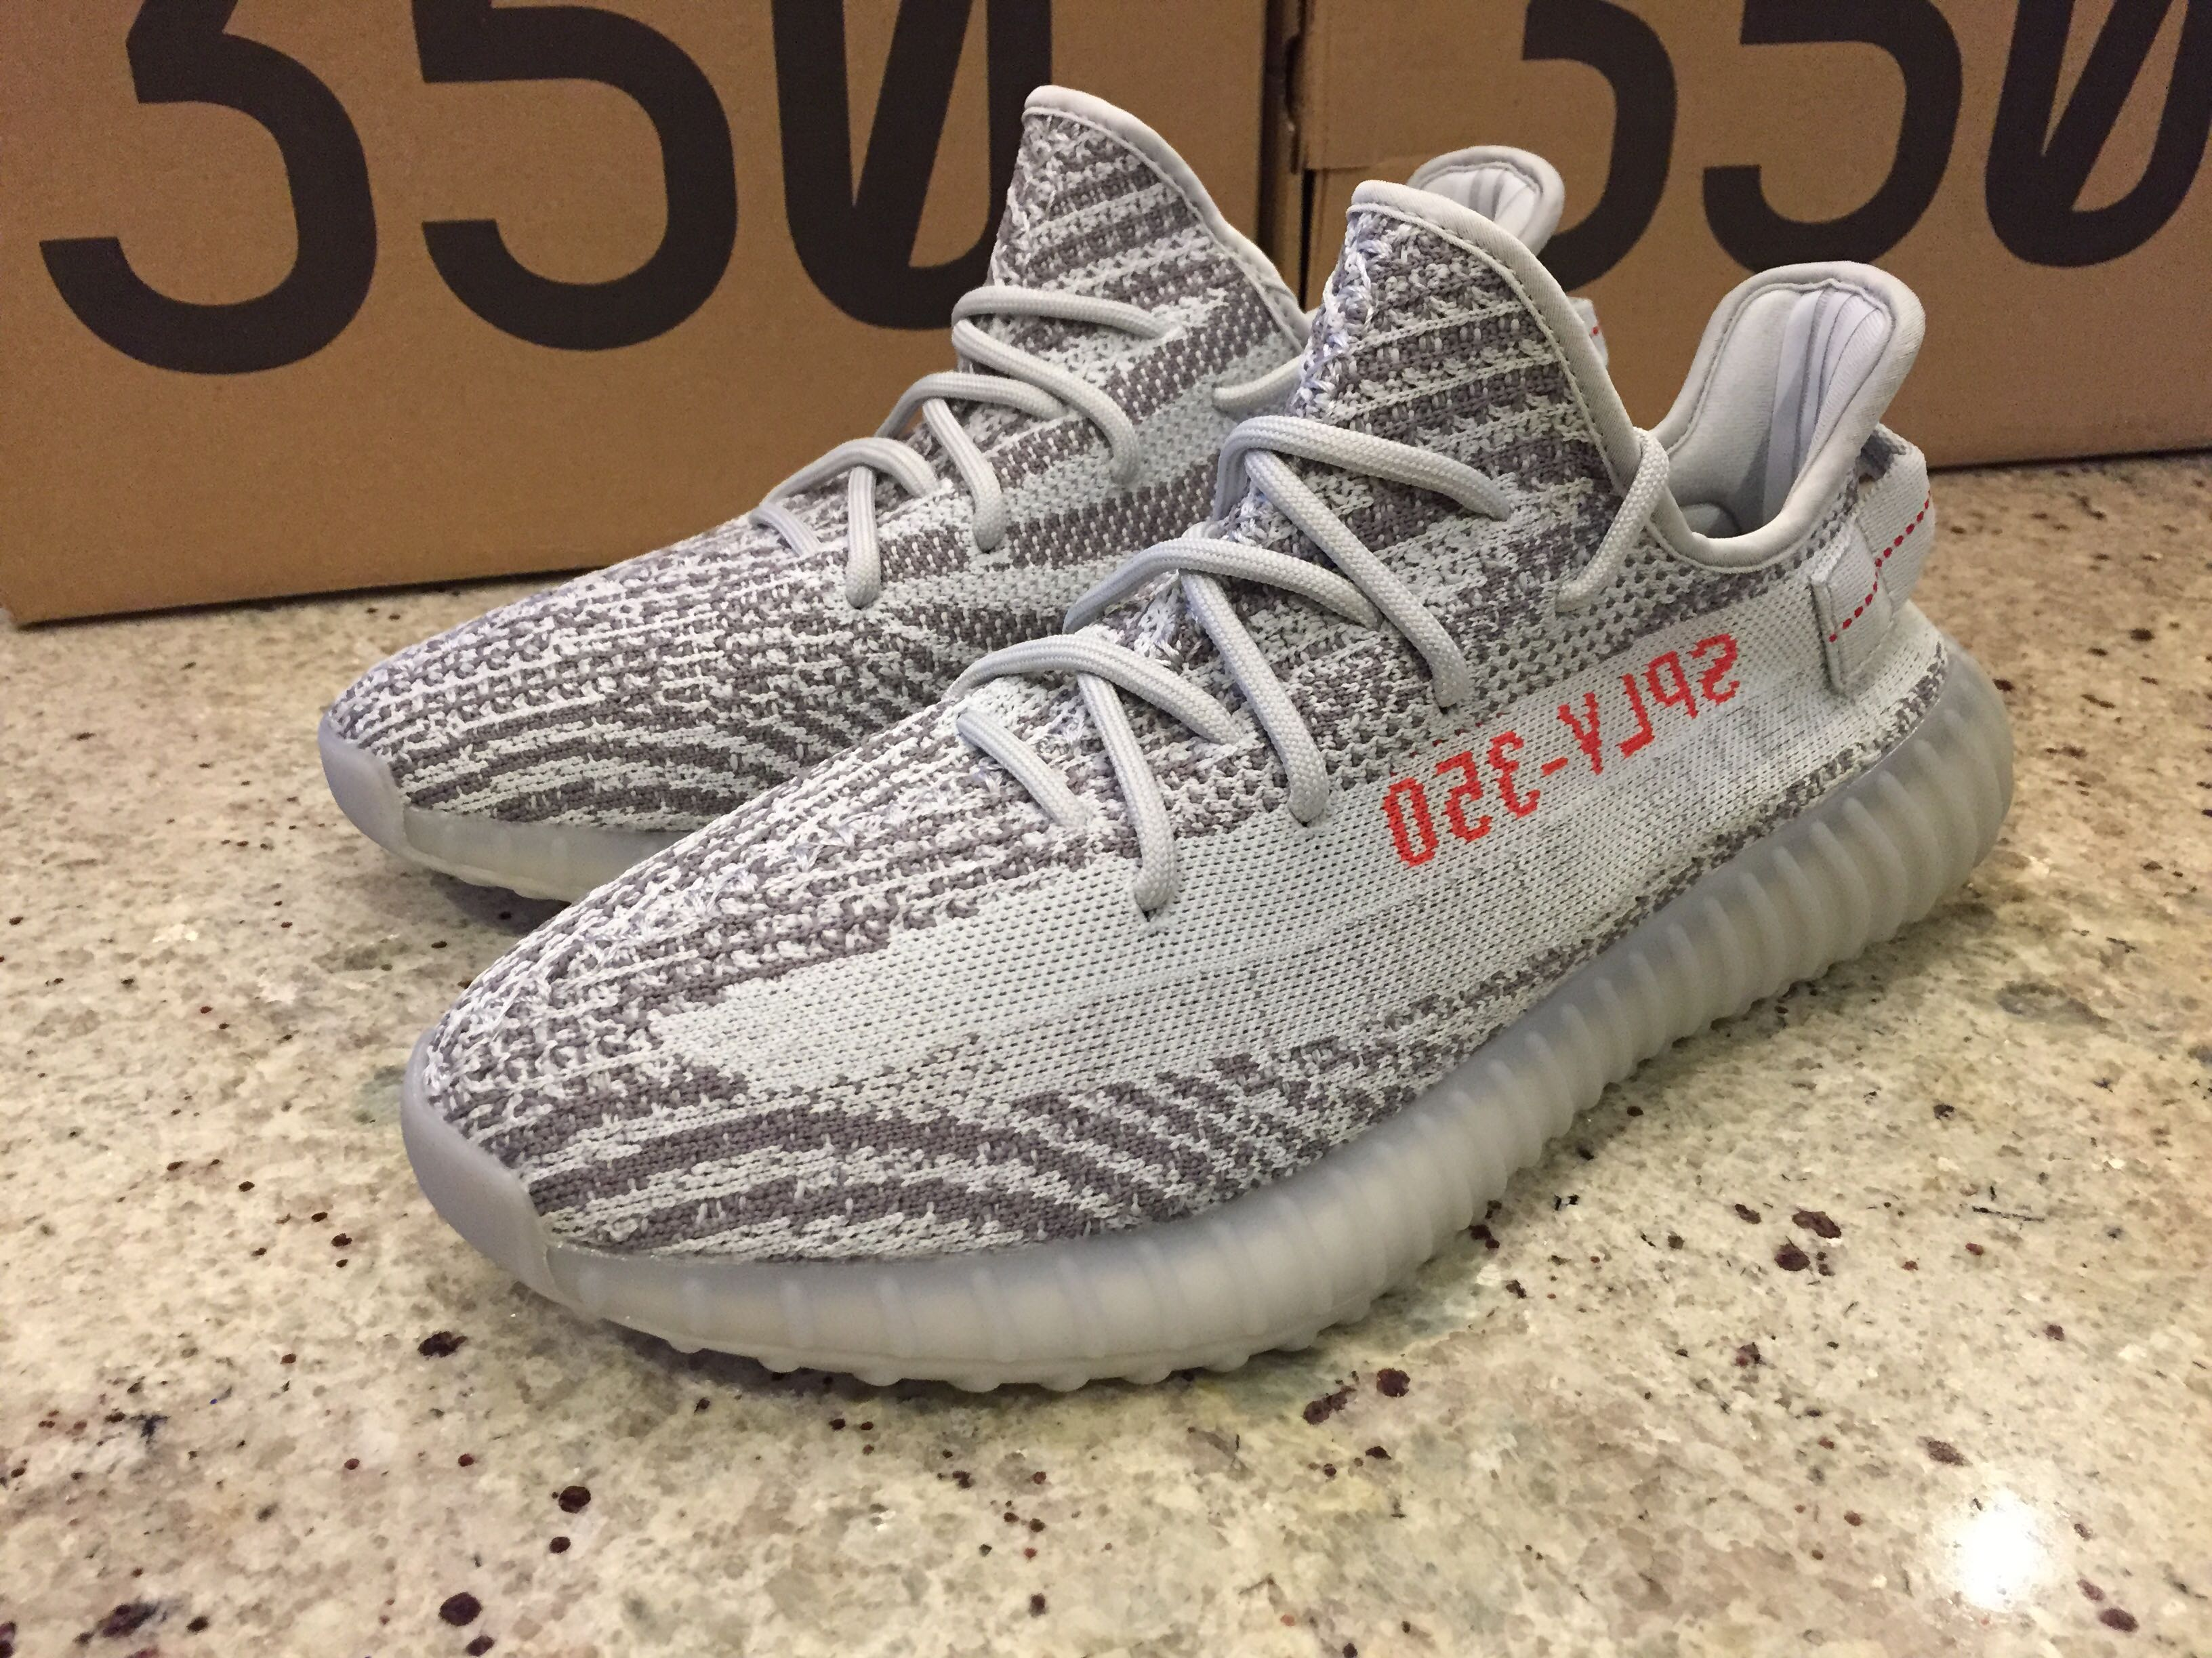 Yeezy Boost 350 V2 (Size 8.5, 9.5, 10) Blue Tint New